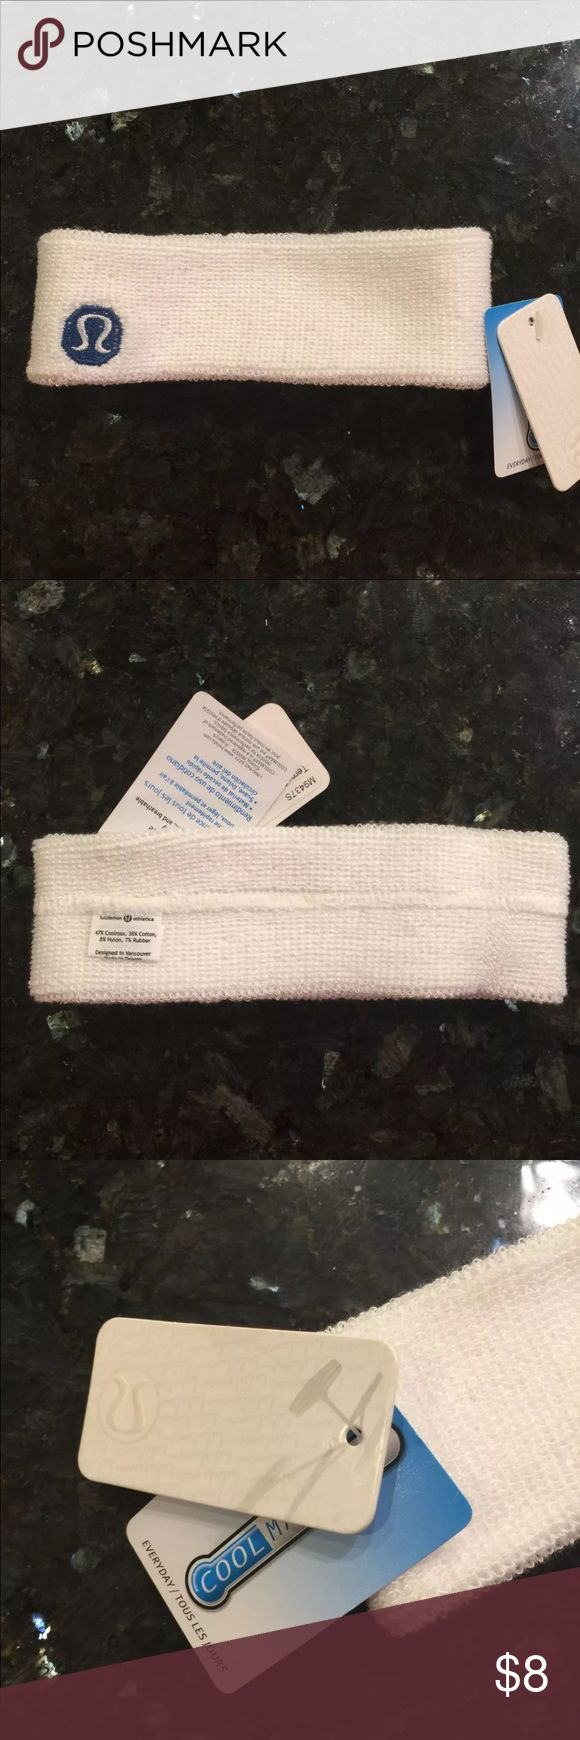 Lululemon terry sweat headband NWT Lululemon Terry sweat headband  New with Tag  White terry fabric  Great for hoy yoga (my experience) lululemon athletica Accessories Hair Accessories